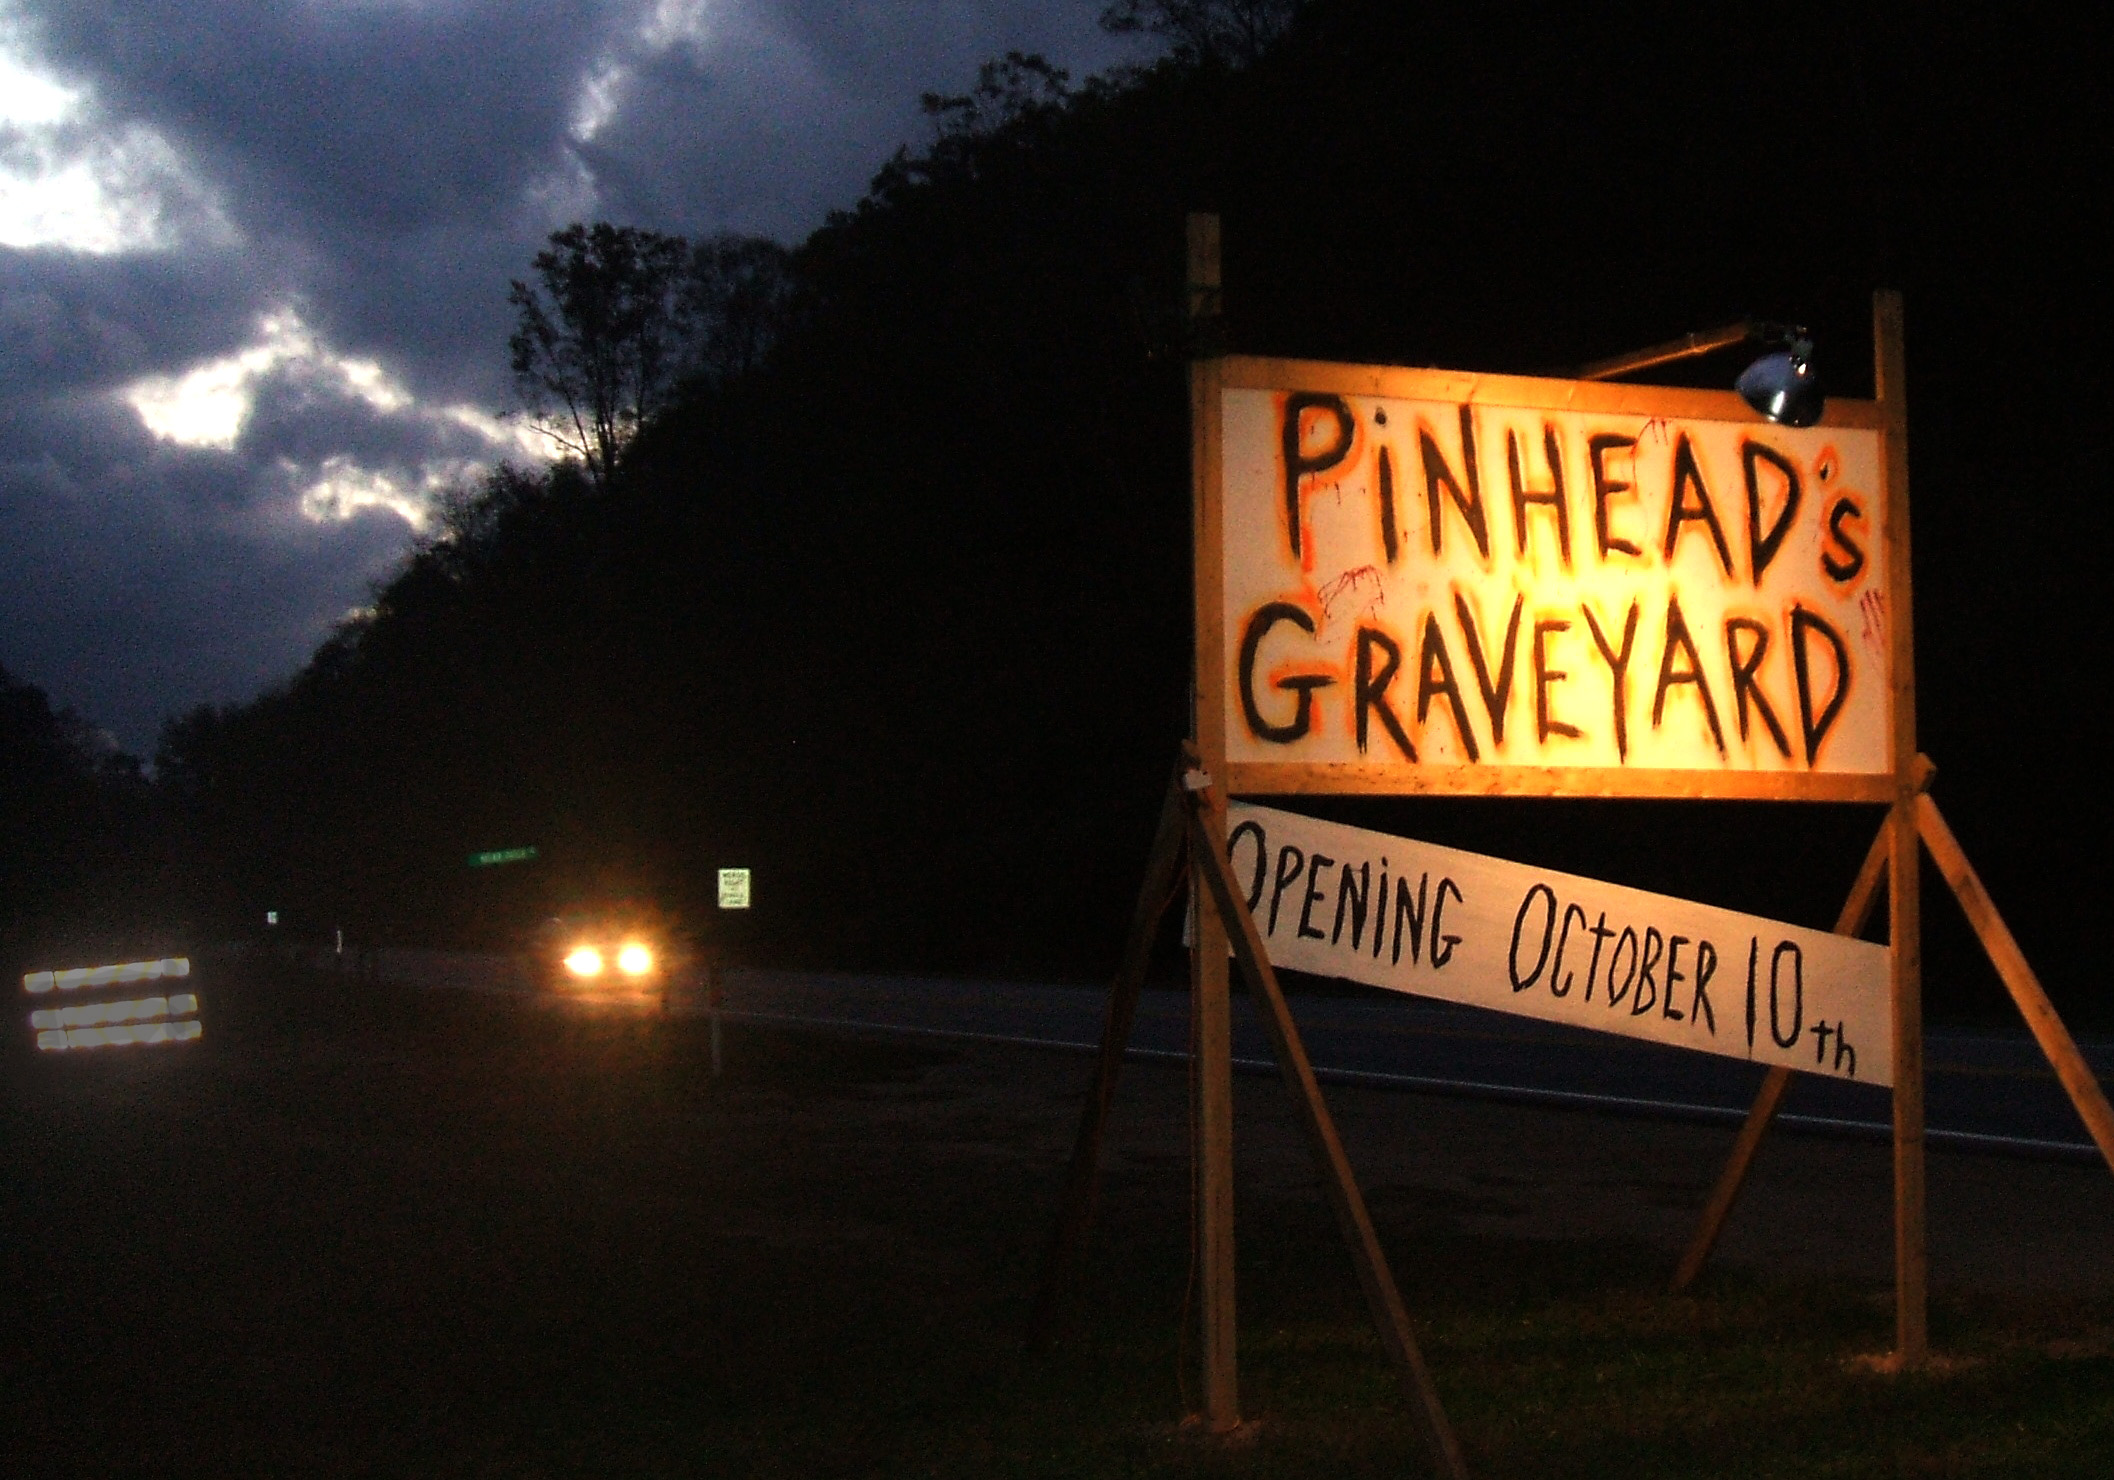 Stuff Monsters Like: It's fun to be frightened at Pinheads Graveyard in Canton